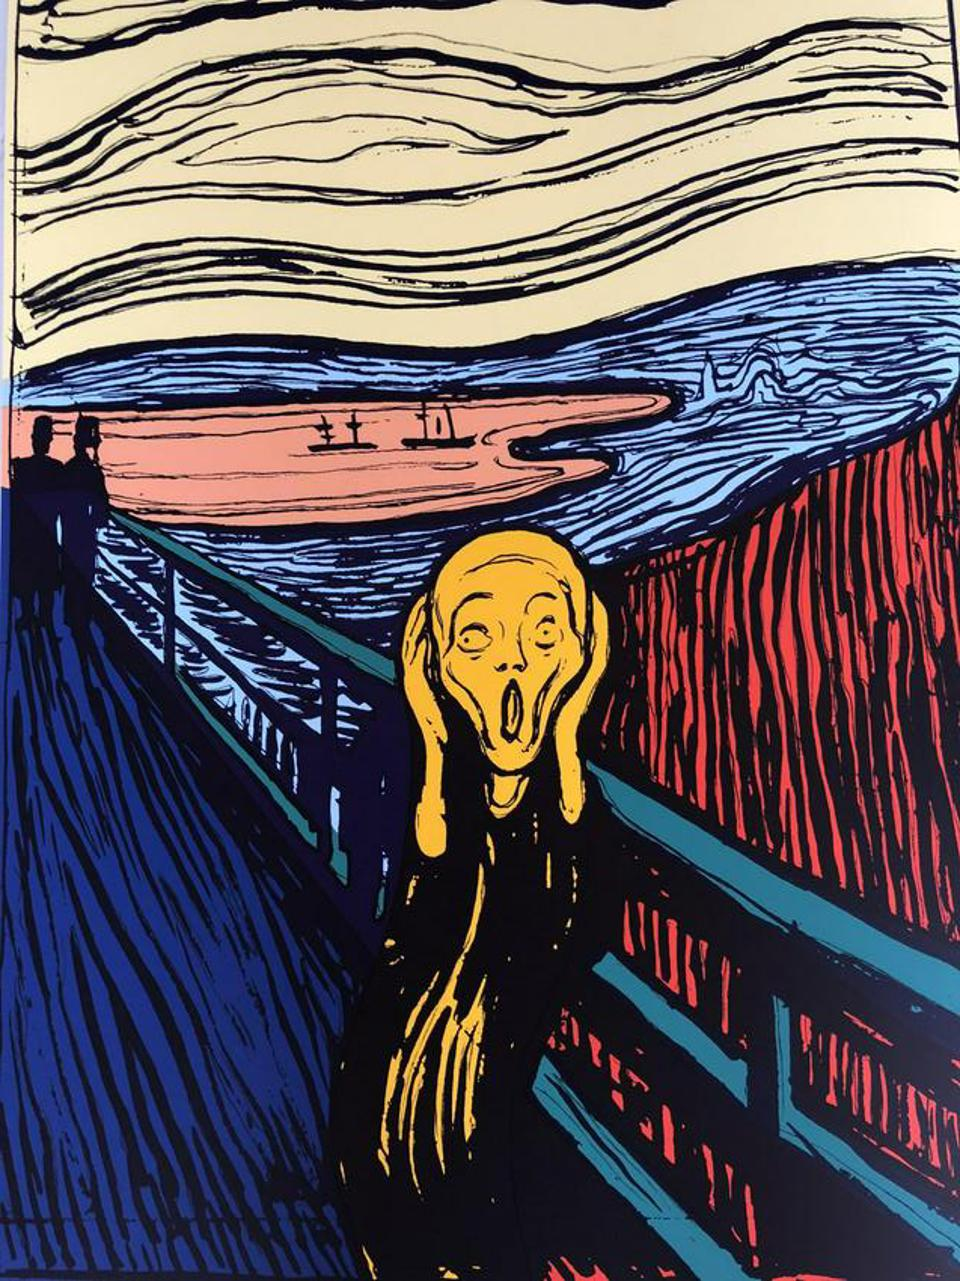 Andy Warhol, ″The Scream (After Munch)″, serigraph